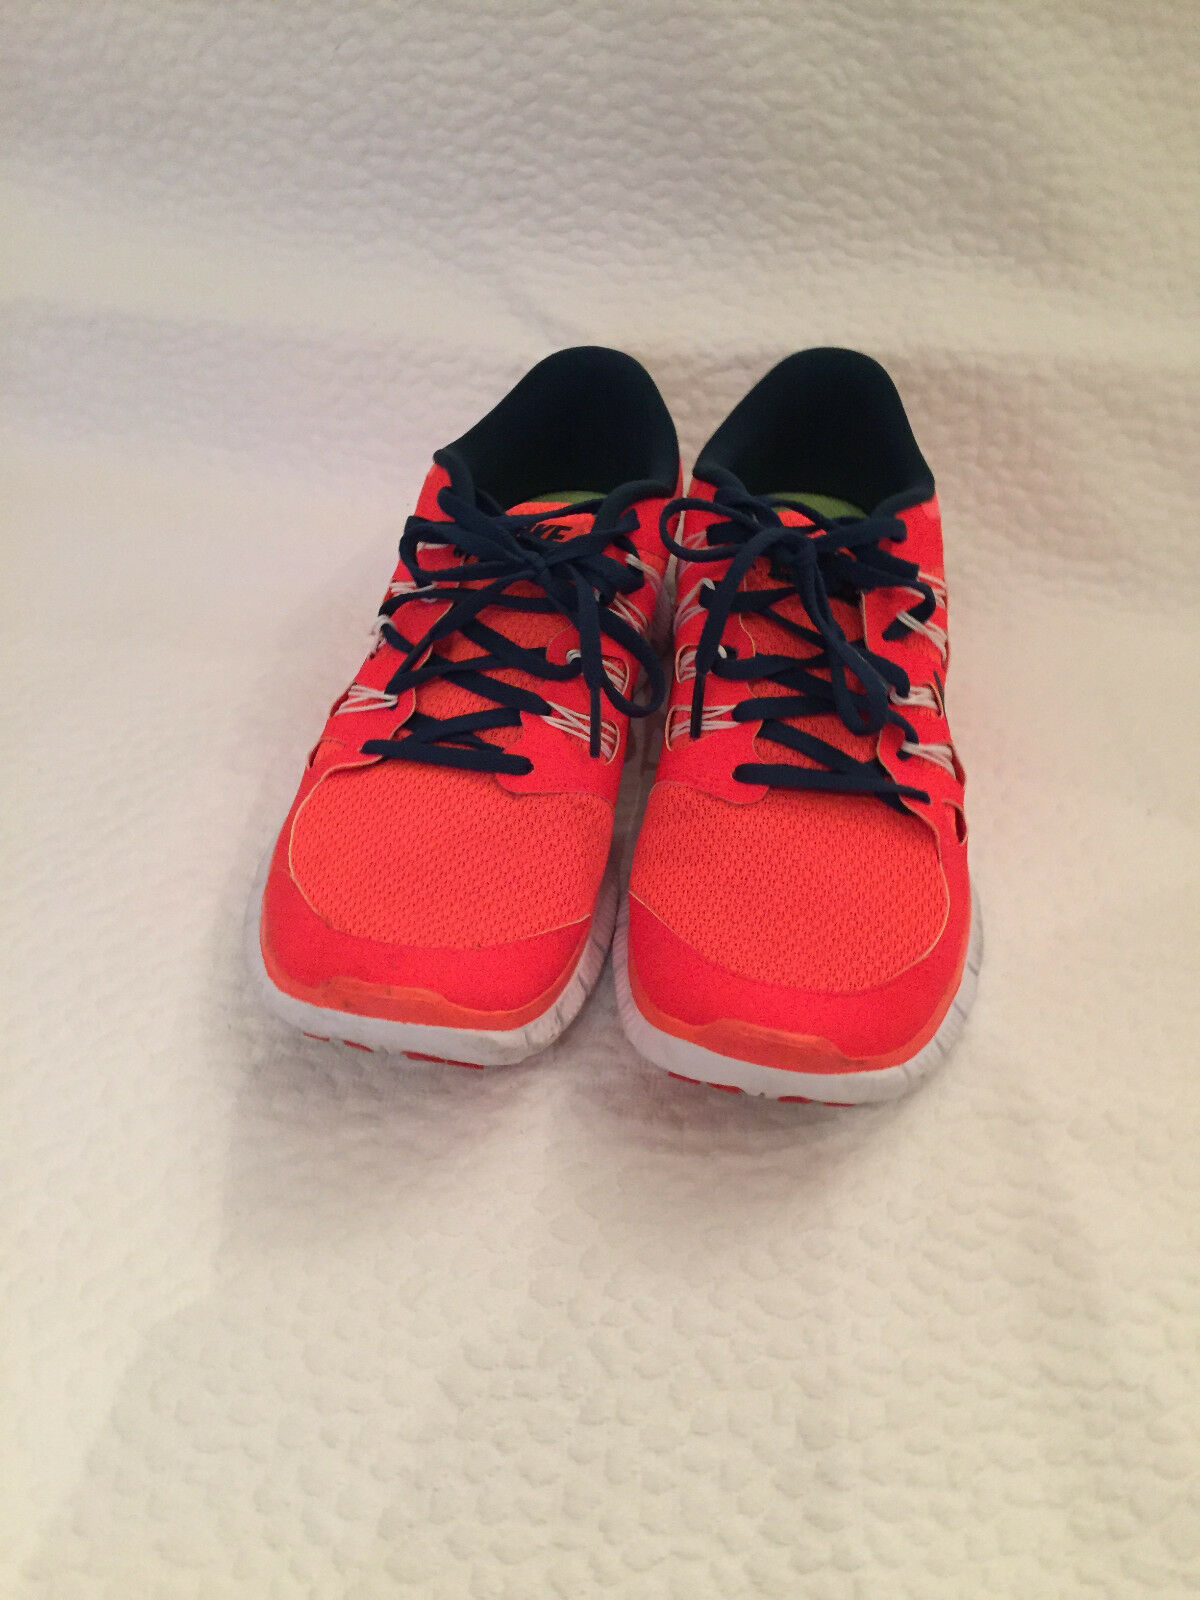 Nike Free rn Distance 2 runners ,orange and Navy, Mens 9.5